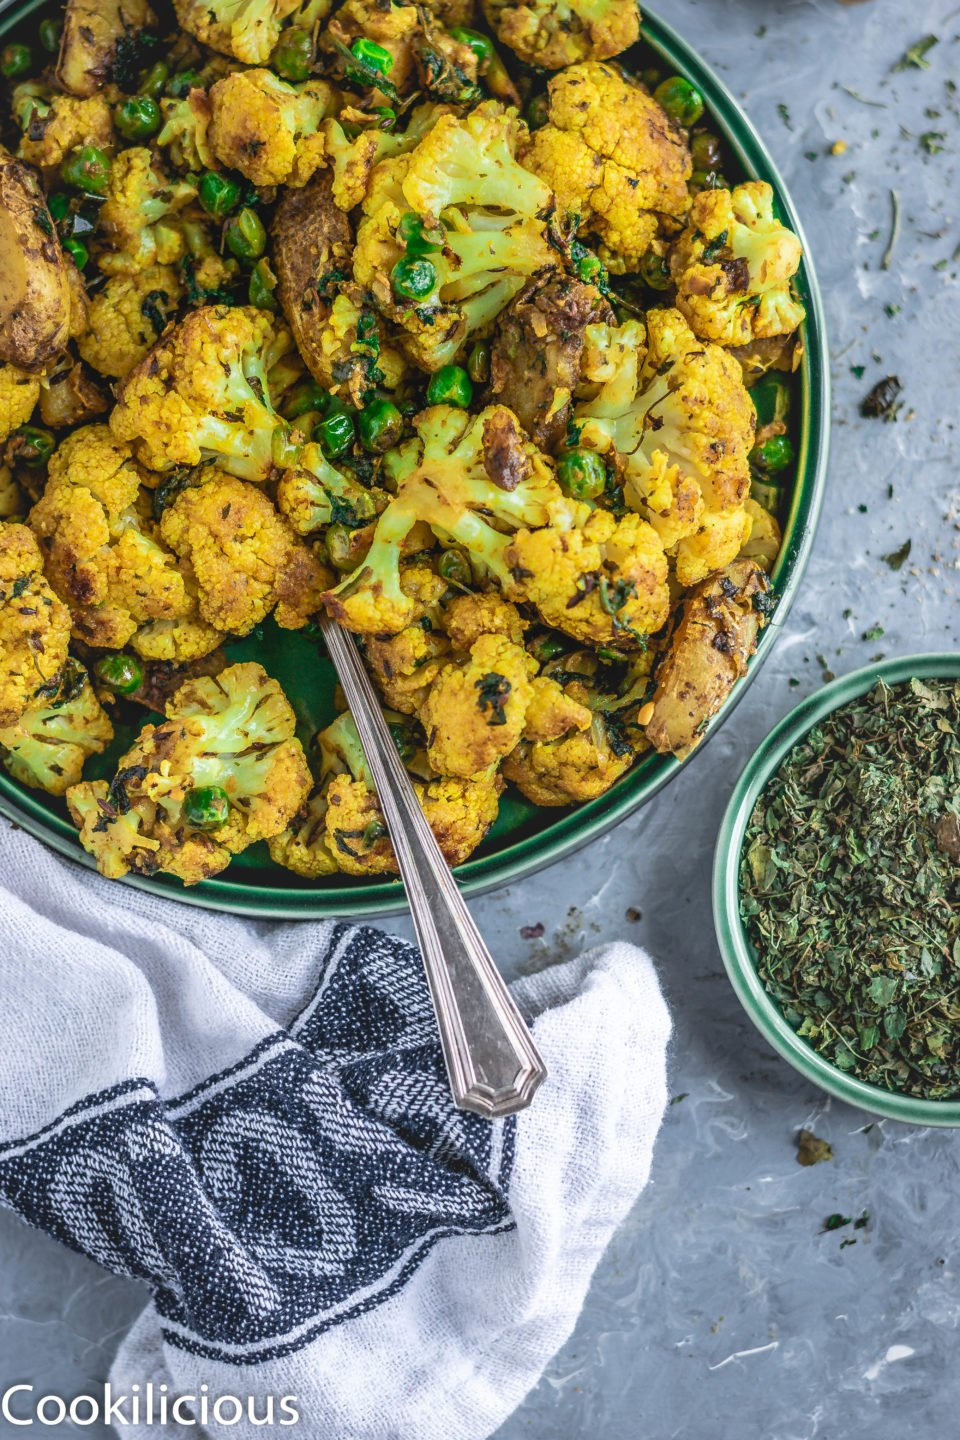 image of a quarter of a plate filled with Indian cauliflower curry called Cauliflower fry